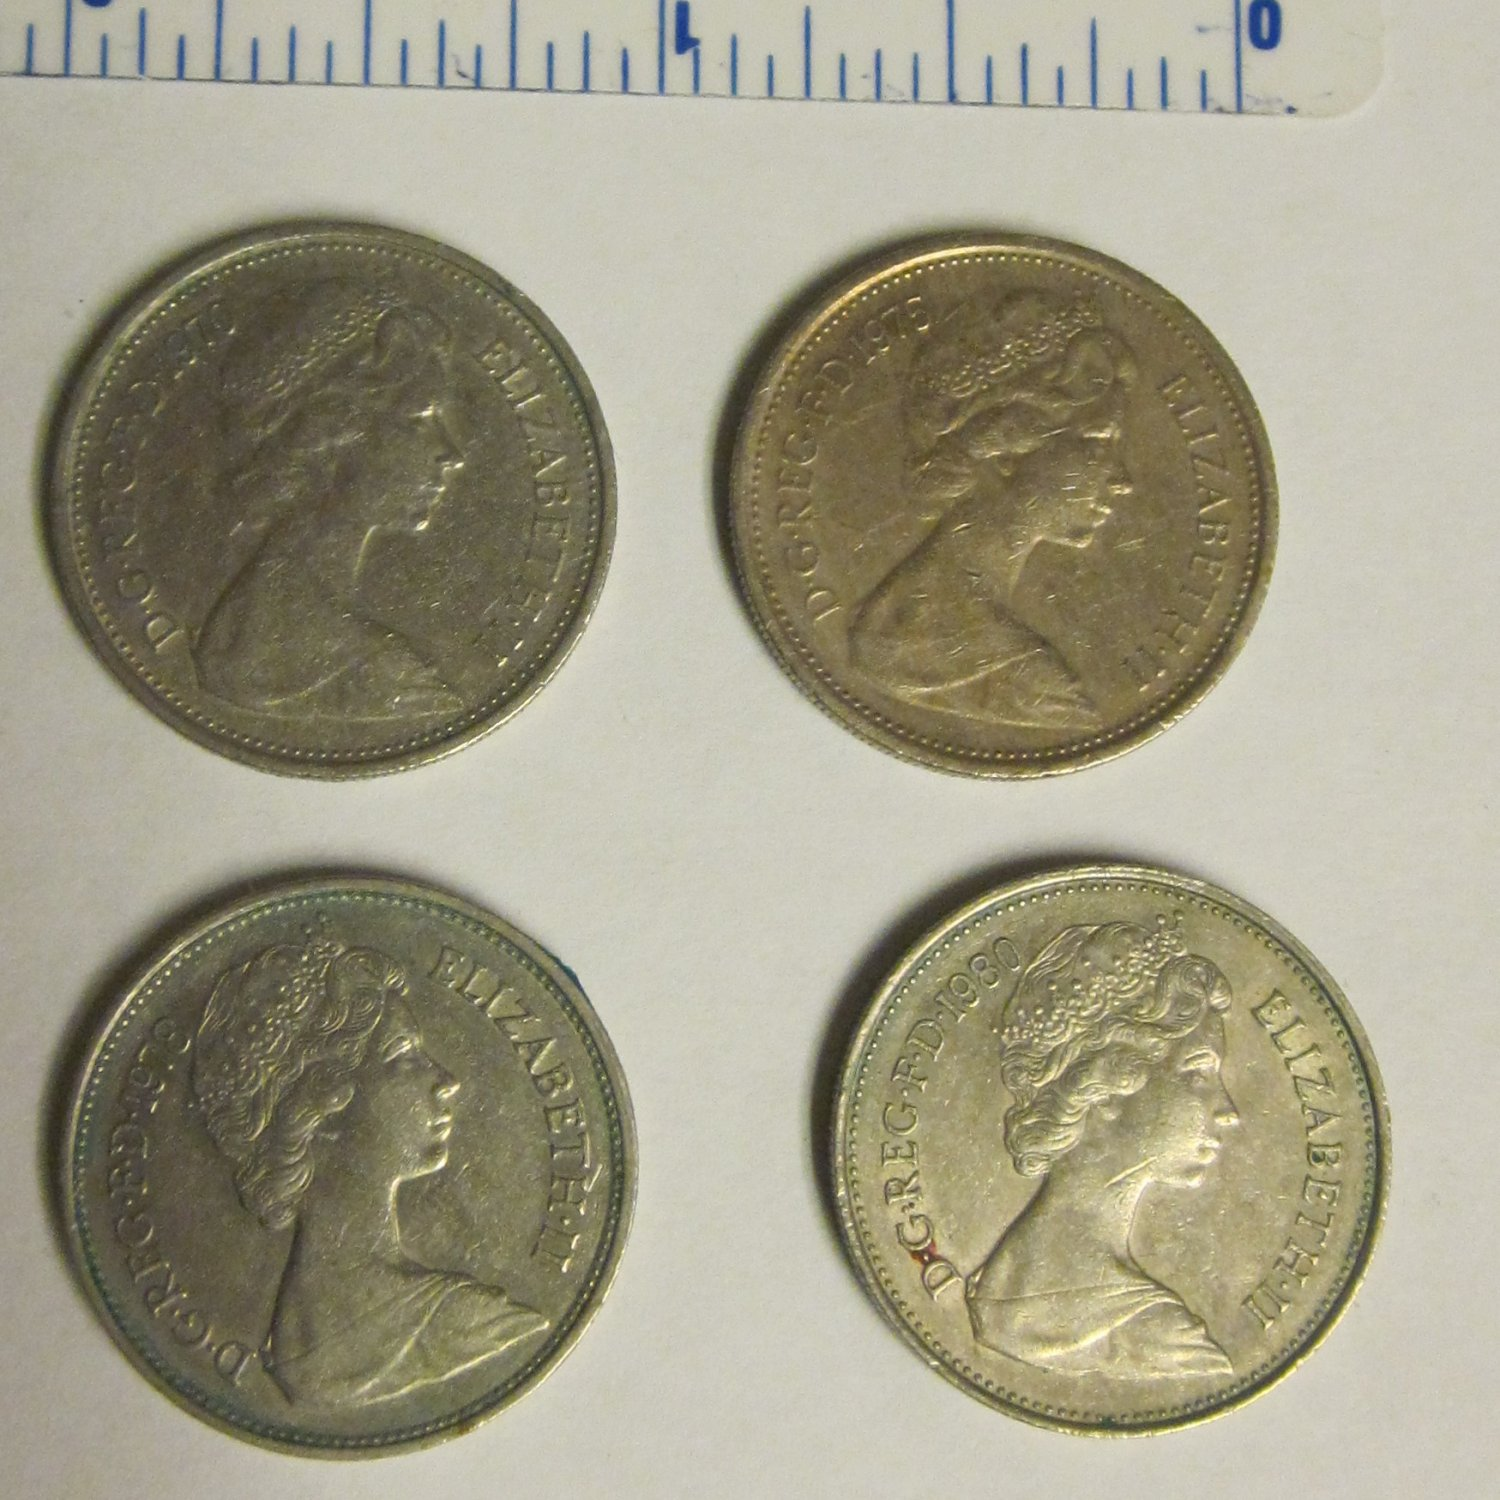 1 each 1970, 1975, 1978, 1980 UK British 5 Five New Pence Collectible Coins